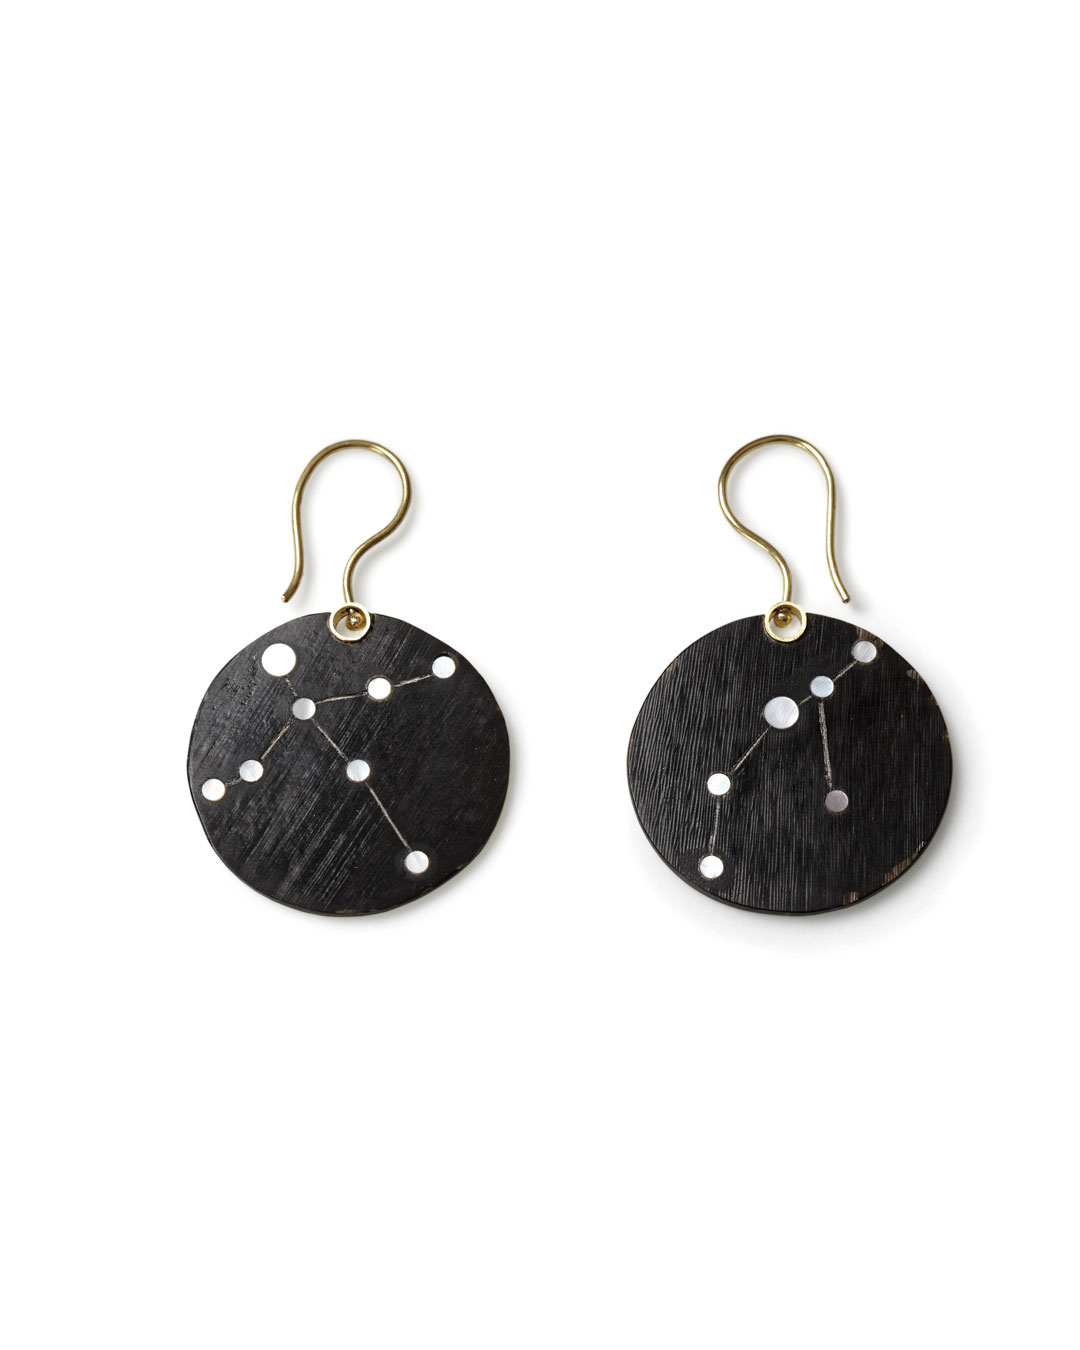 Julie Mollenhauer, untitled, 2015, earrings; buffalo horn, mother-of-pearl, 14ct gold, 45 x 27 x 1 mm, €1010